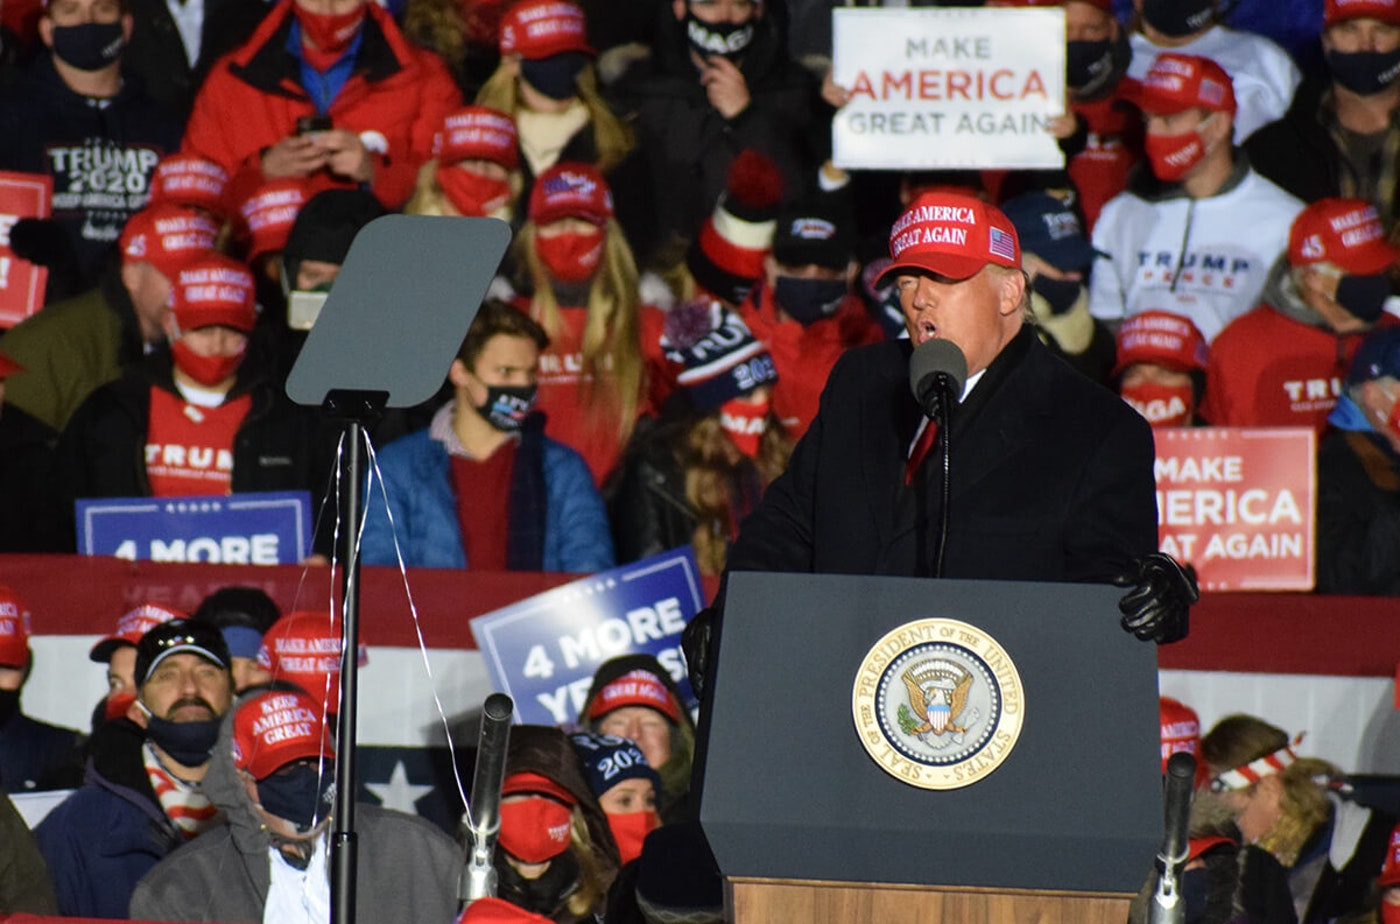 President Donald Trump speaks in Kenosha Nov. 2, less than 12 hours before polls were set to open in Wisconsin for the presidential election. He lost his bid for re-election, yet two lawsuits have been filed, challenging Wisconsin's election results. (Photo by Jonathon Sadowski)